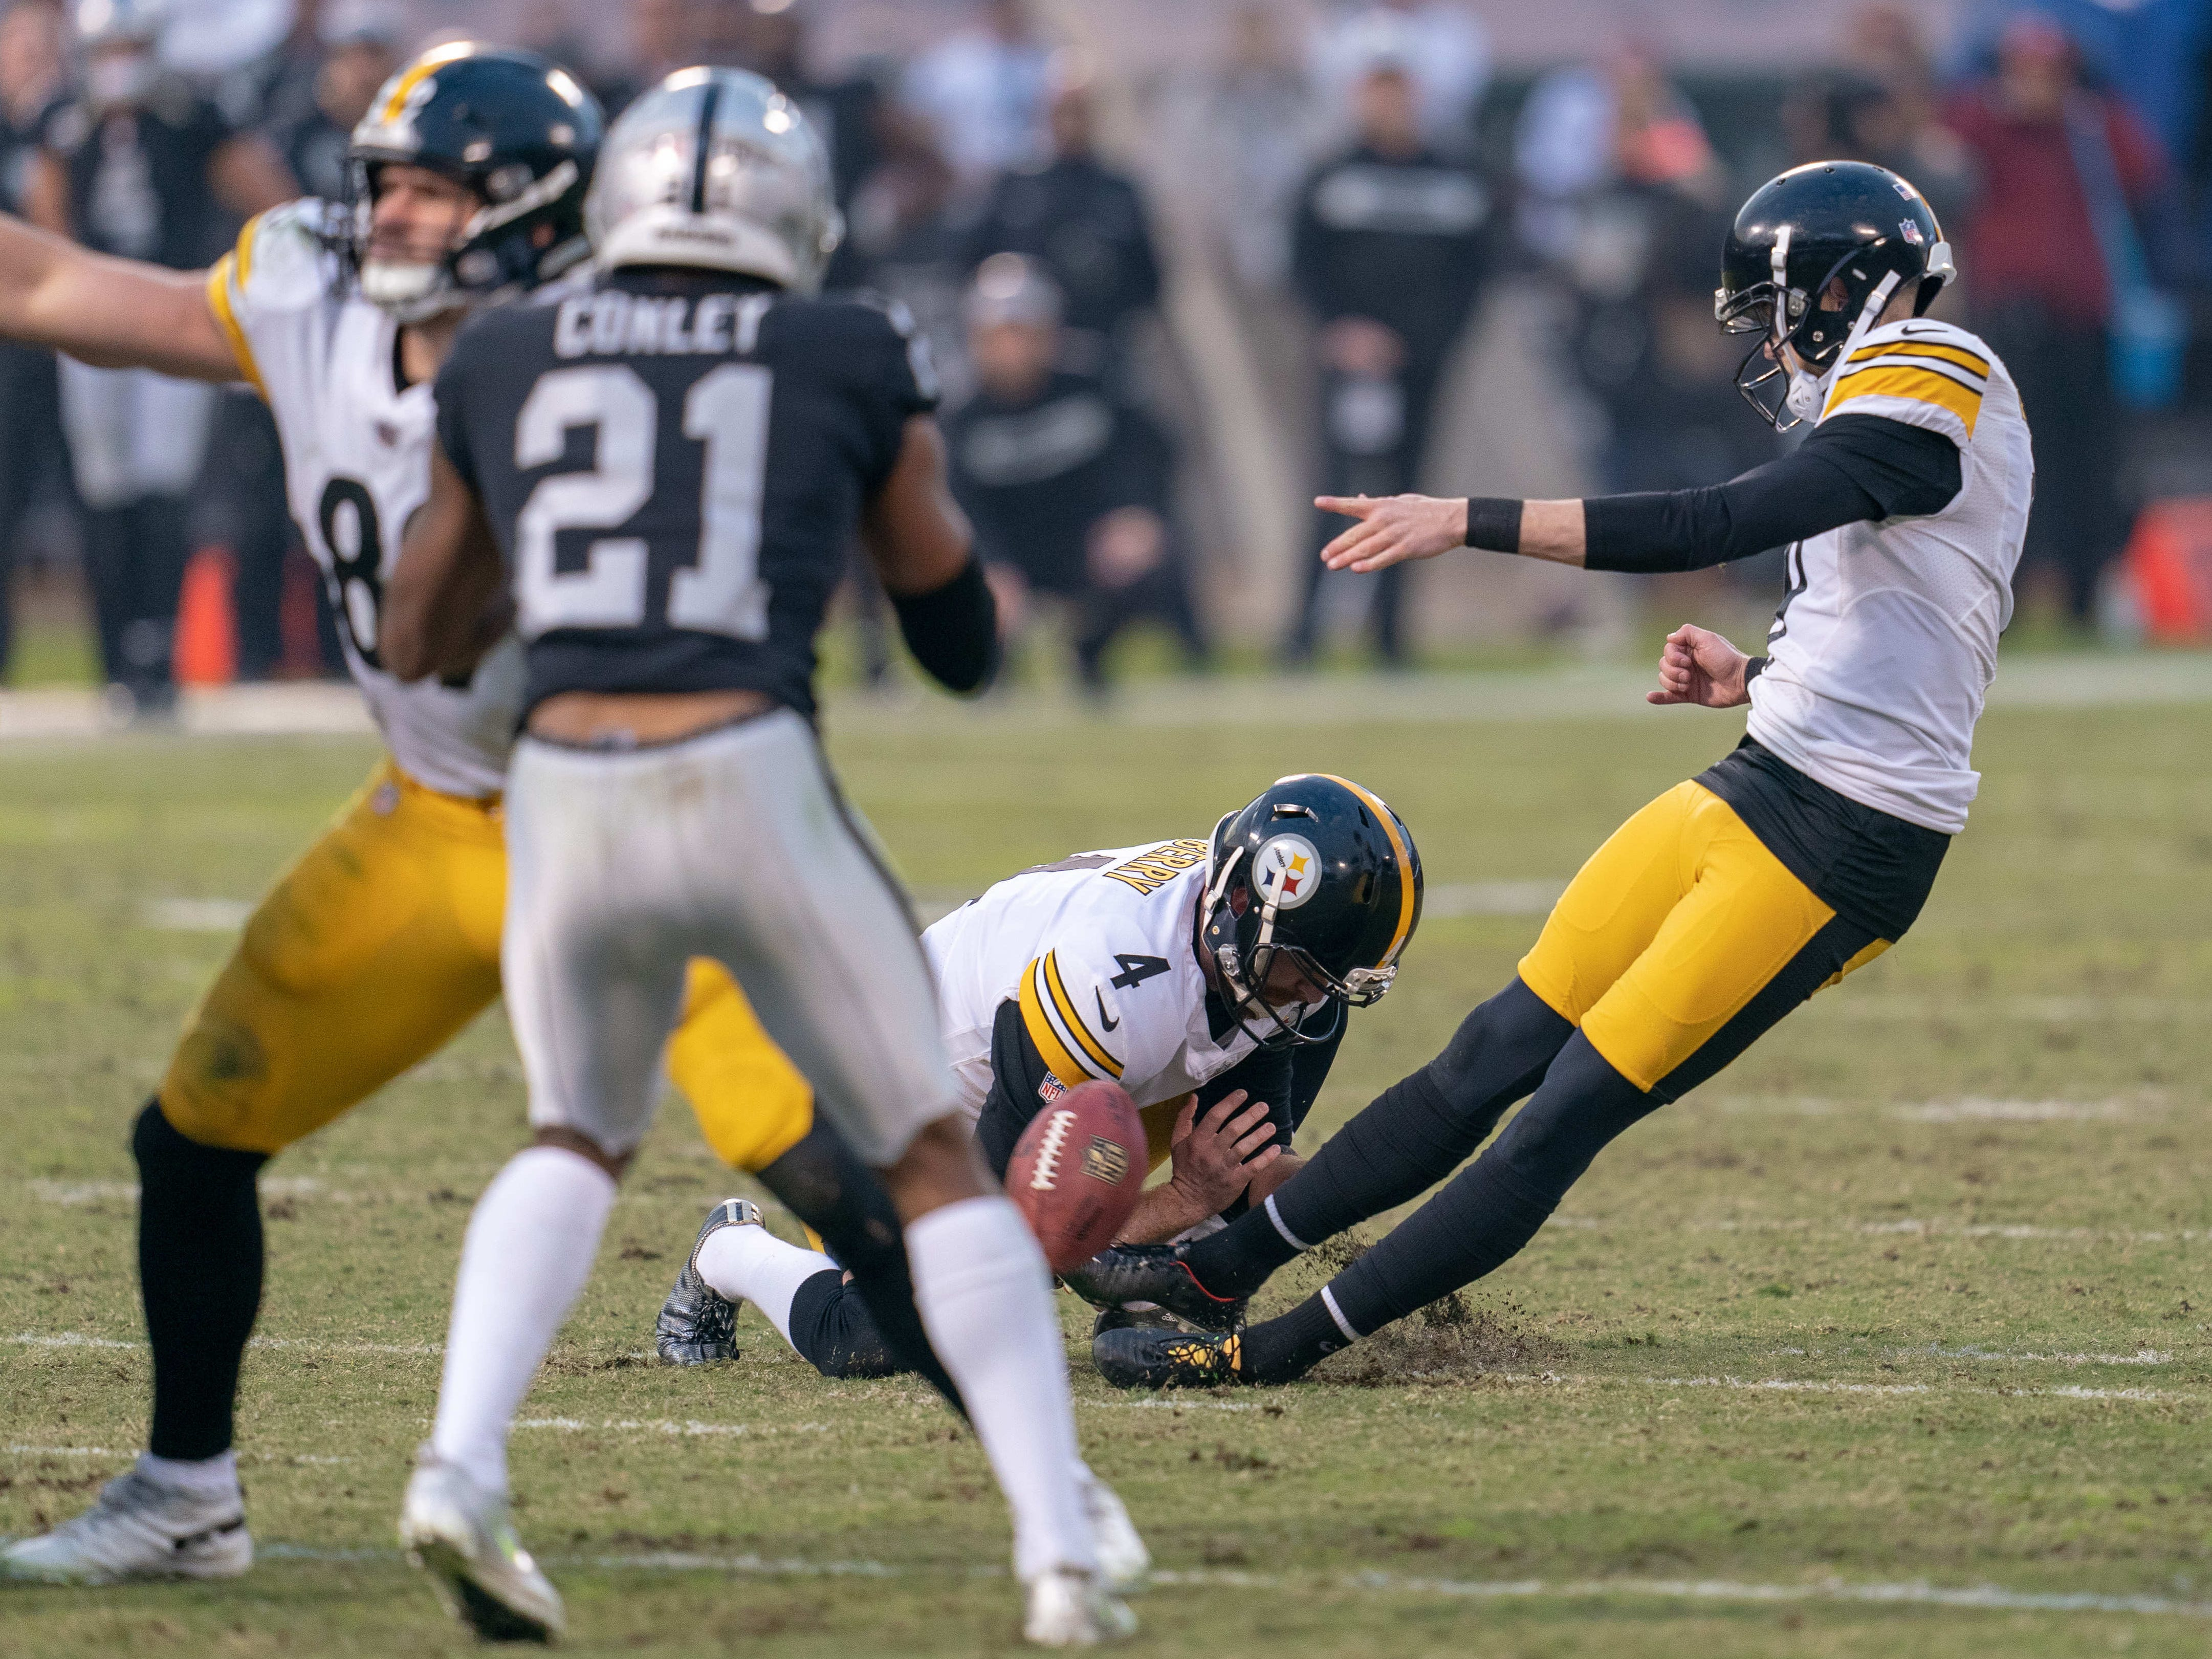 Pittsburgh Steelers kicker Chris Boswell slips during a field goal attempt to tie the game against the Oakland Raiders during the fourth quarter at Oakland Coliseum.